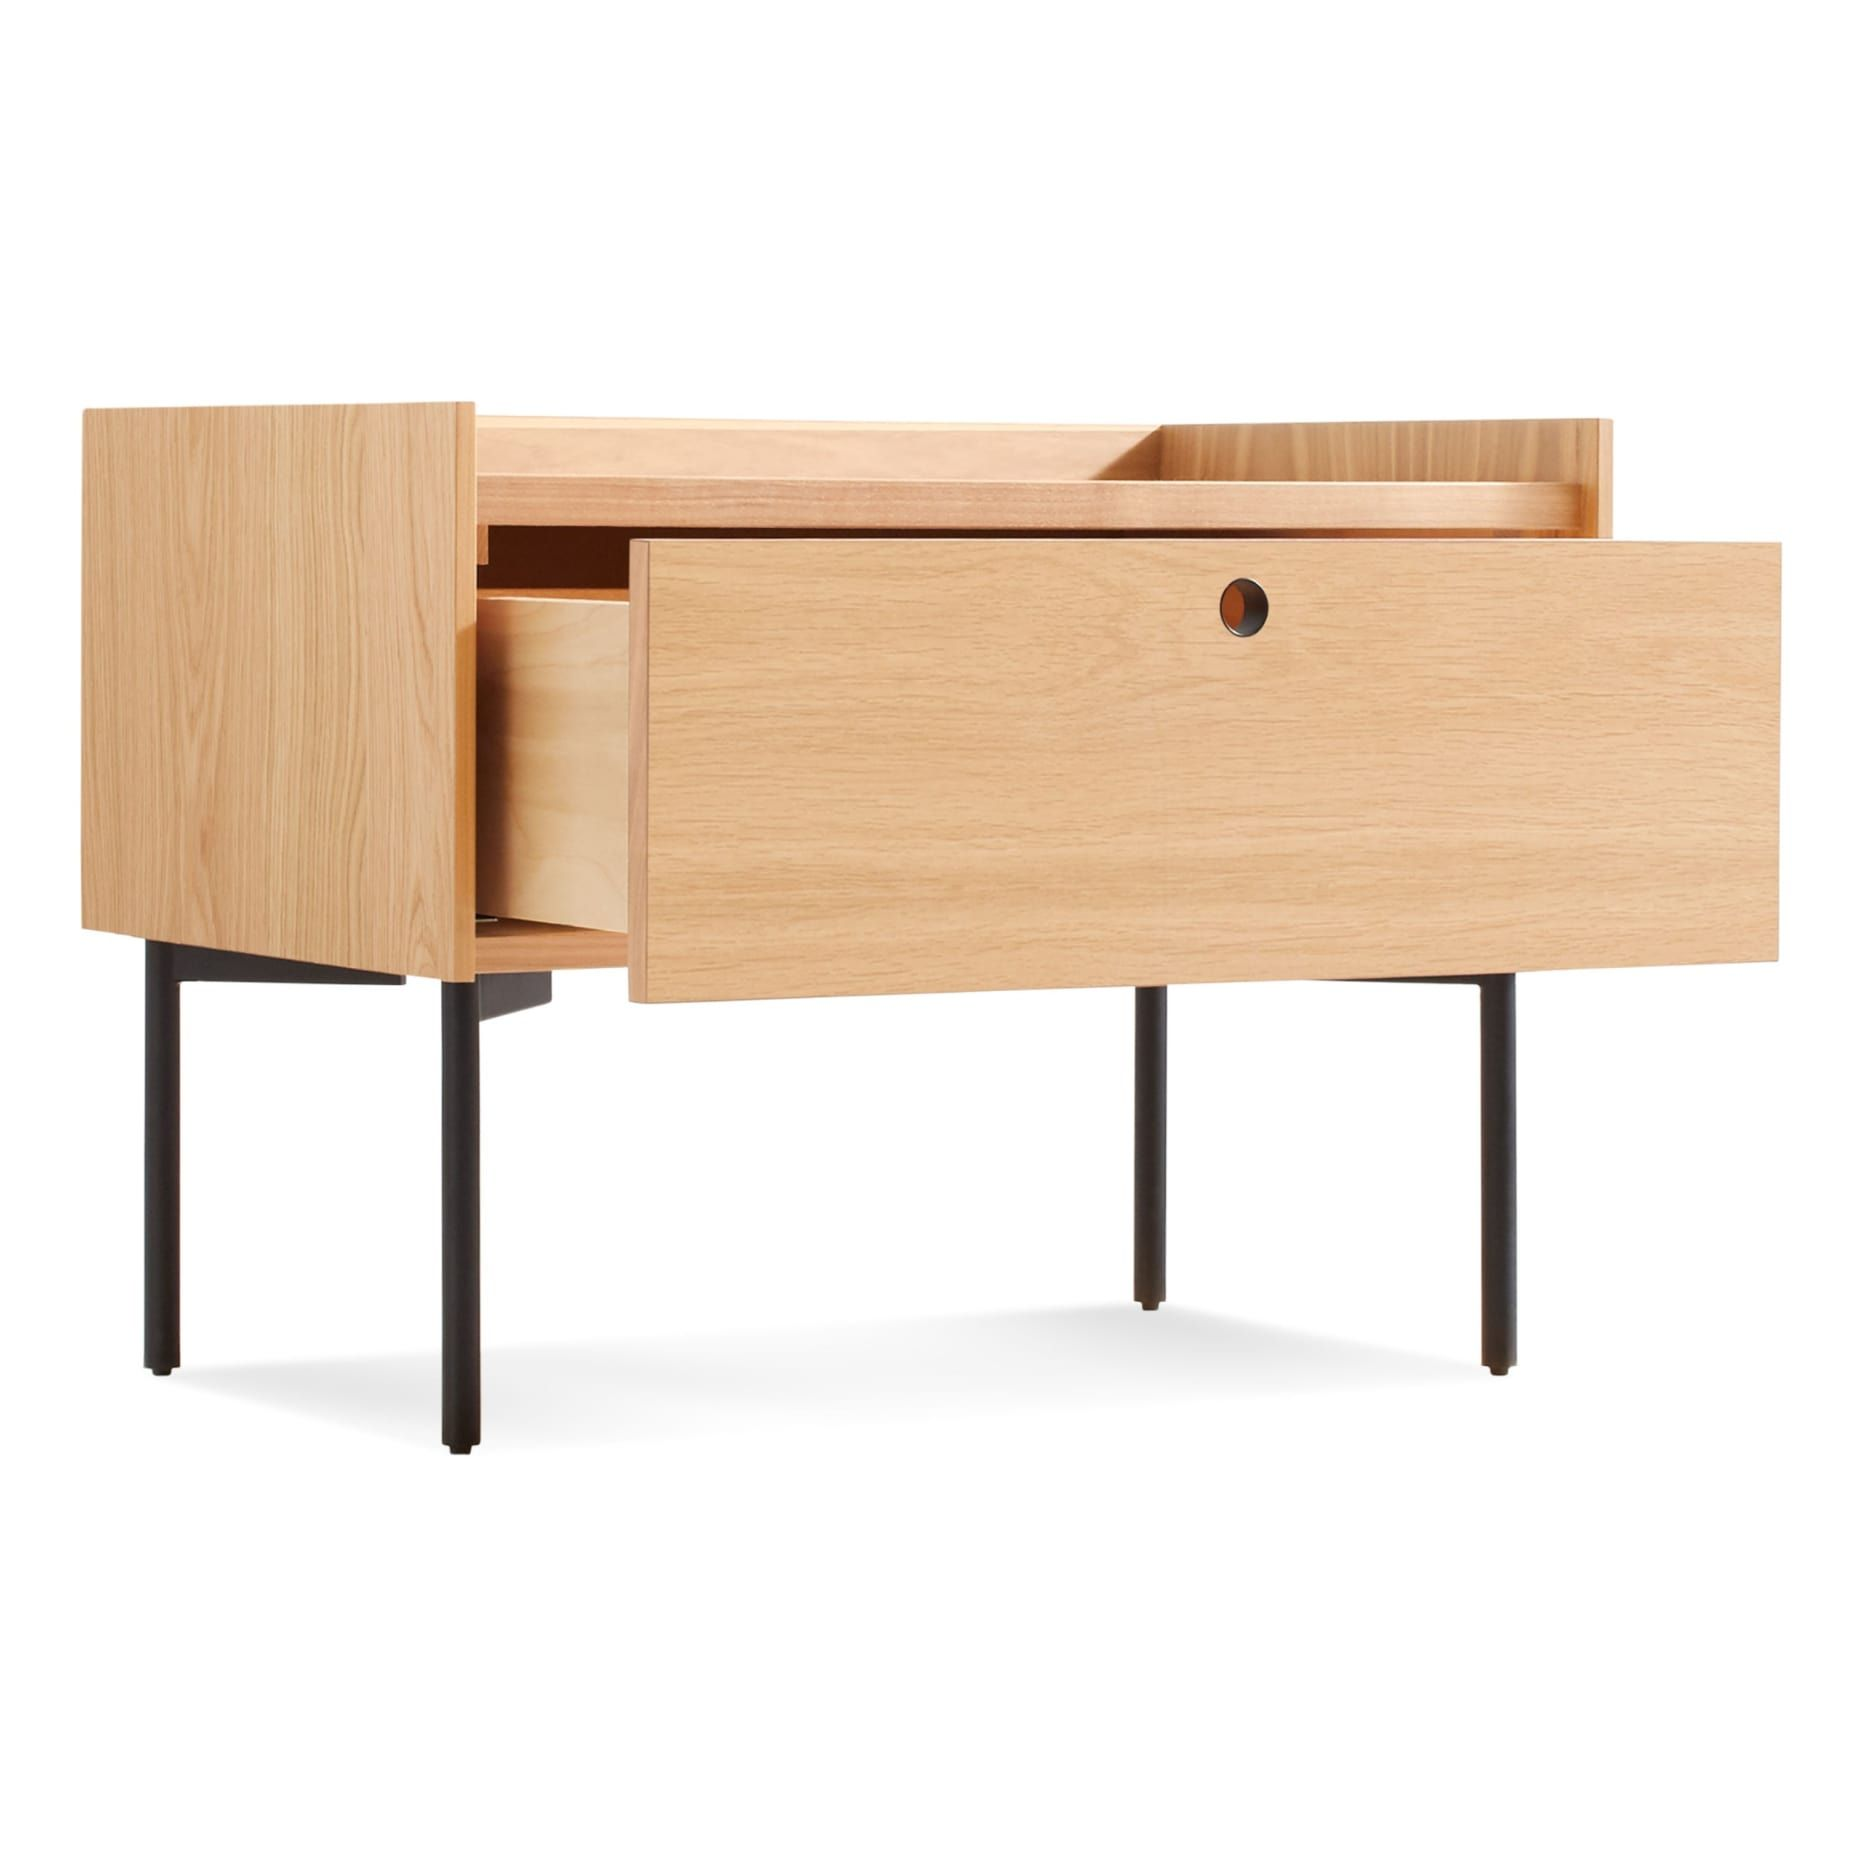 Clad Nightstand, Hickory / Oyster Modern bedside table